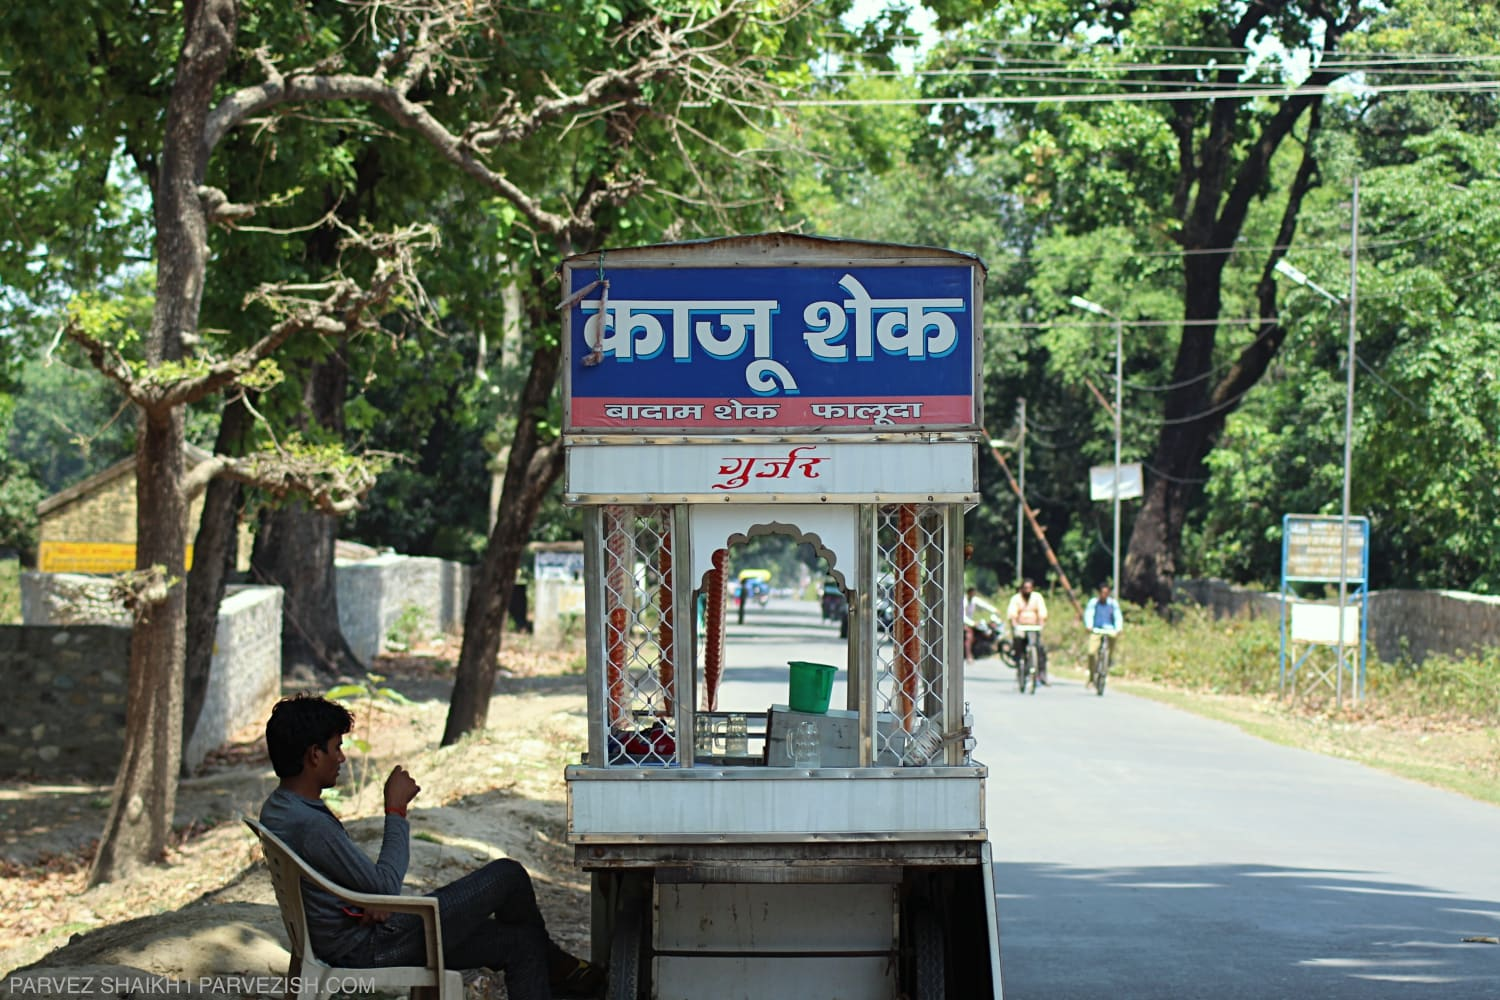 A vendor near the India Nepal border in Ambassa